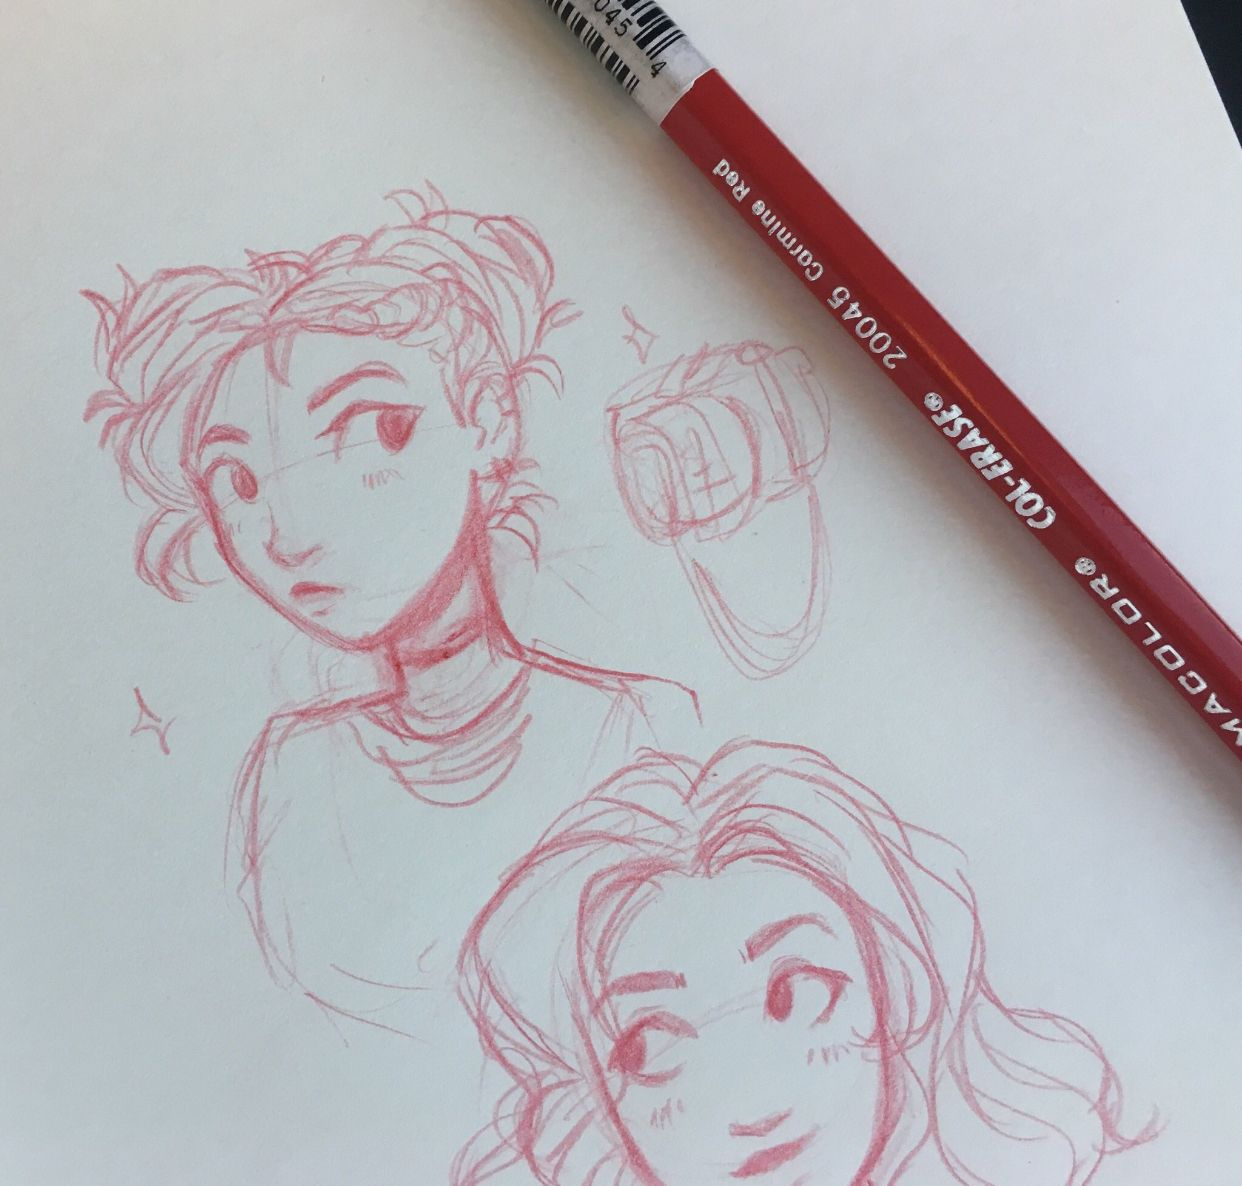 Laia On Twitter Sketch Book Drawings Sketches